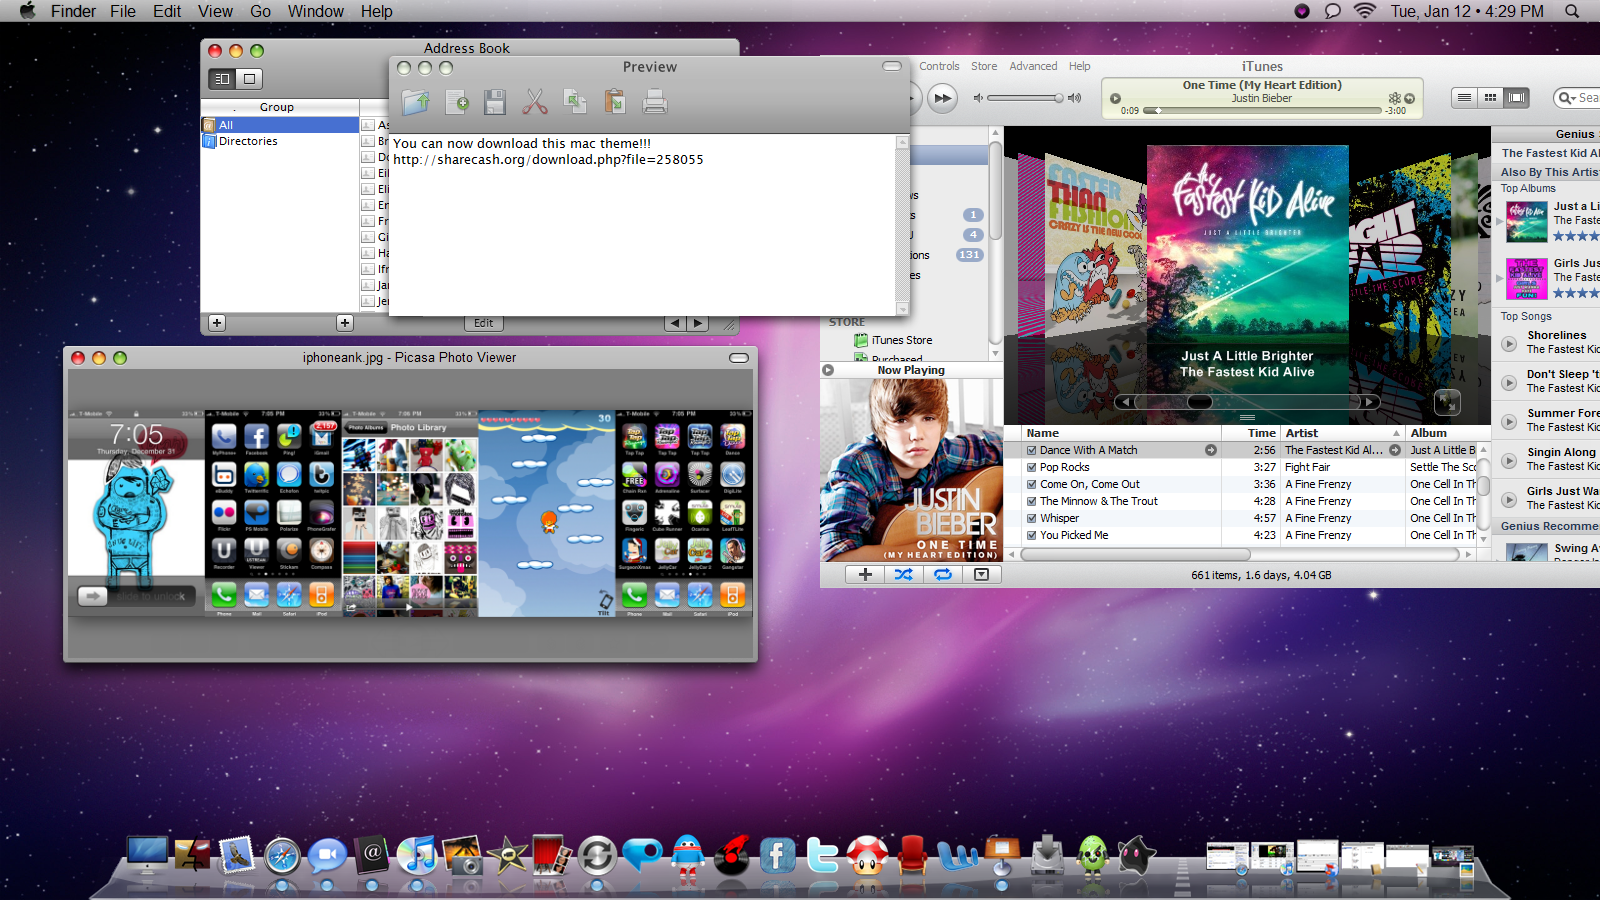 Mac Theme Windows 7 Desktop by ayeesiks